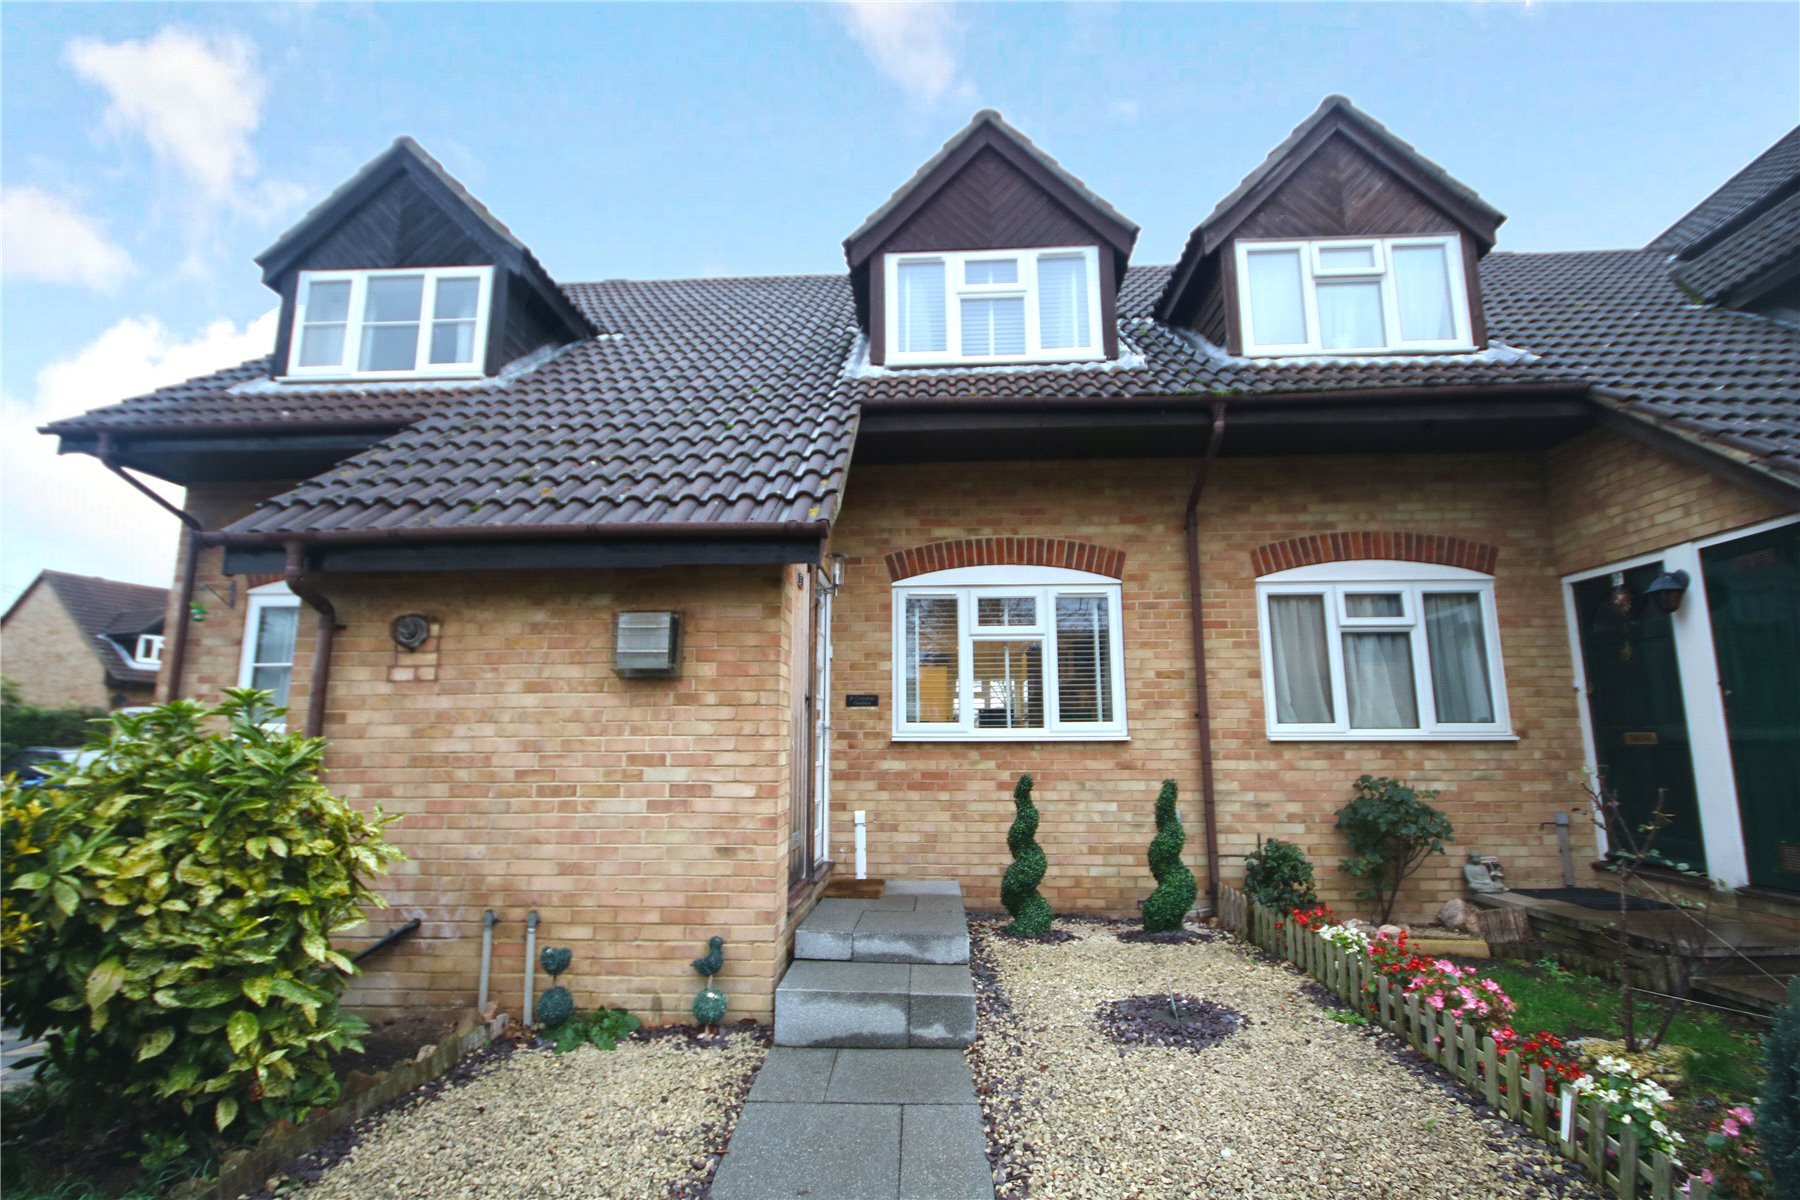 2 Bedrooms Terraced House for sale in Compton Gardens, Addlestone, Surrey, KT15